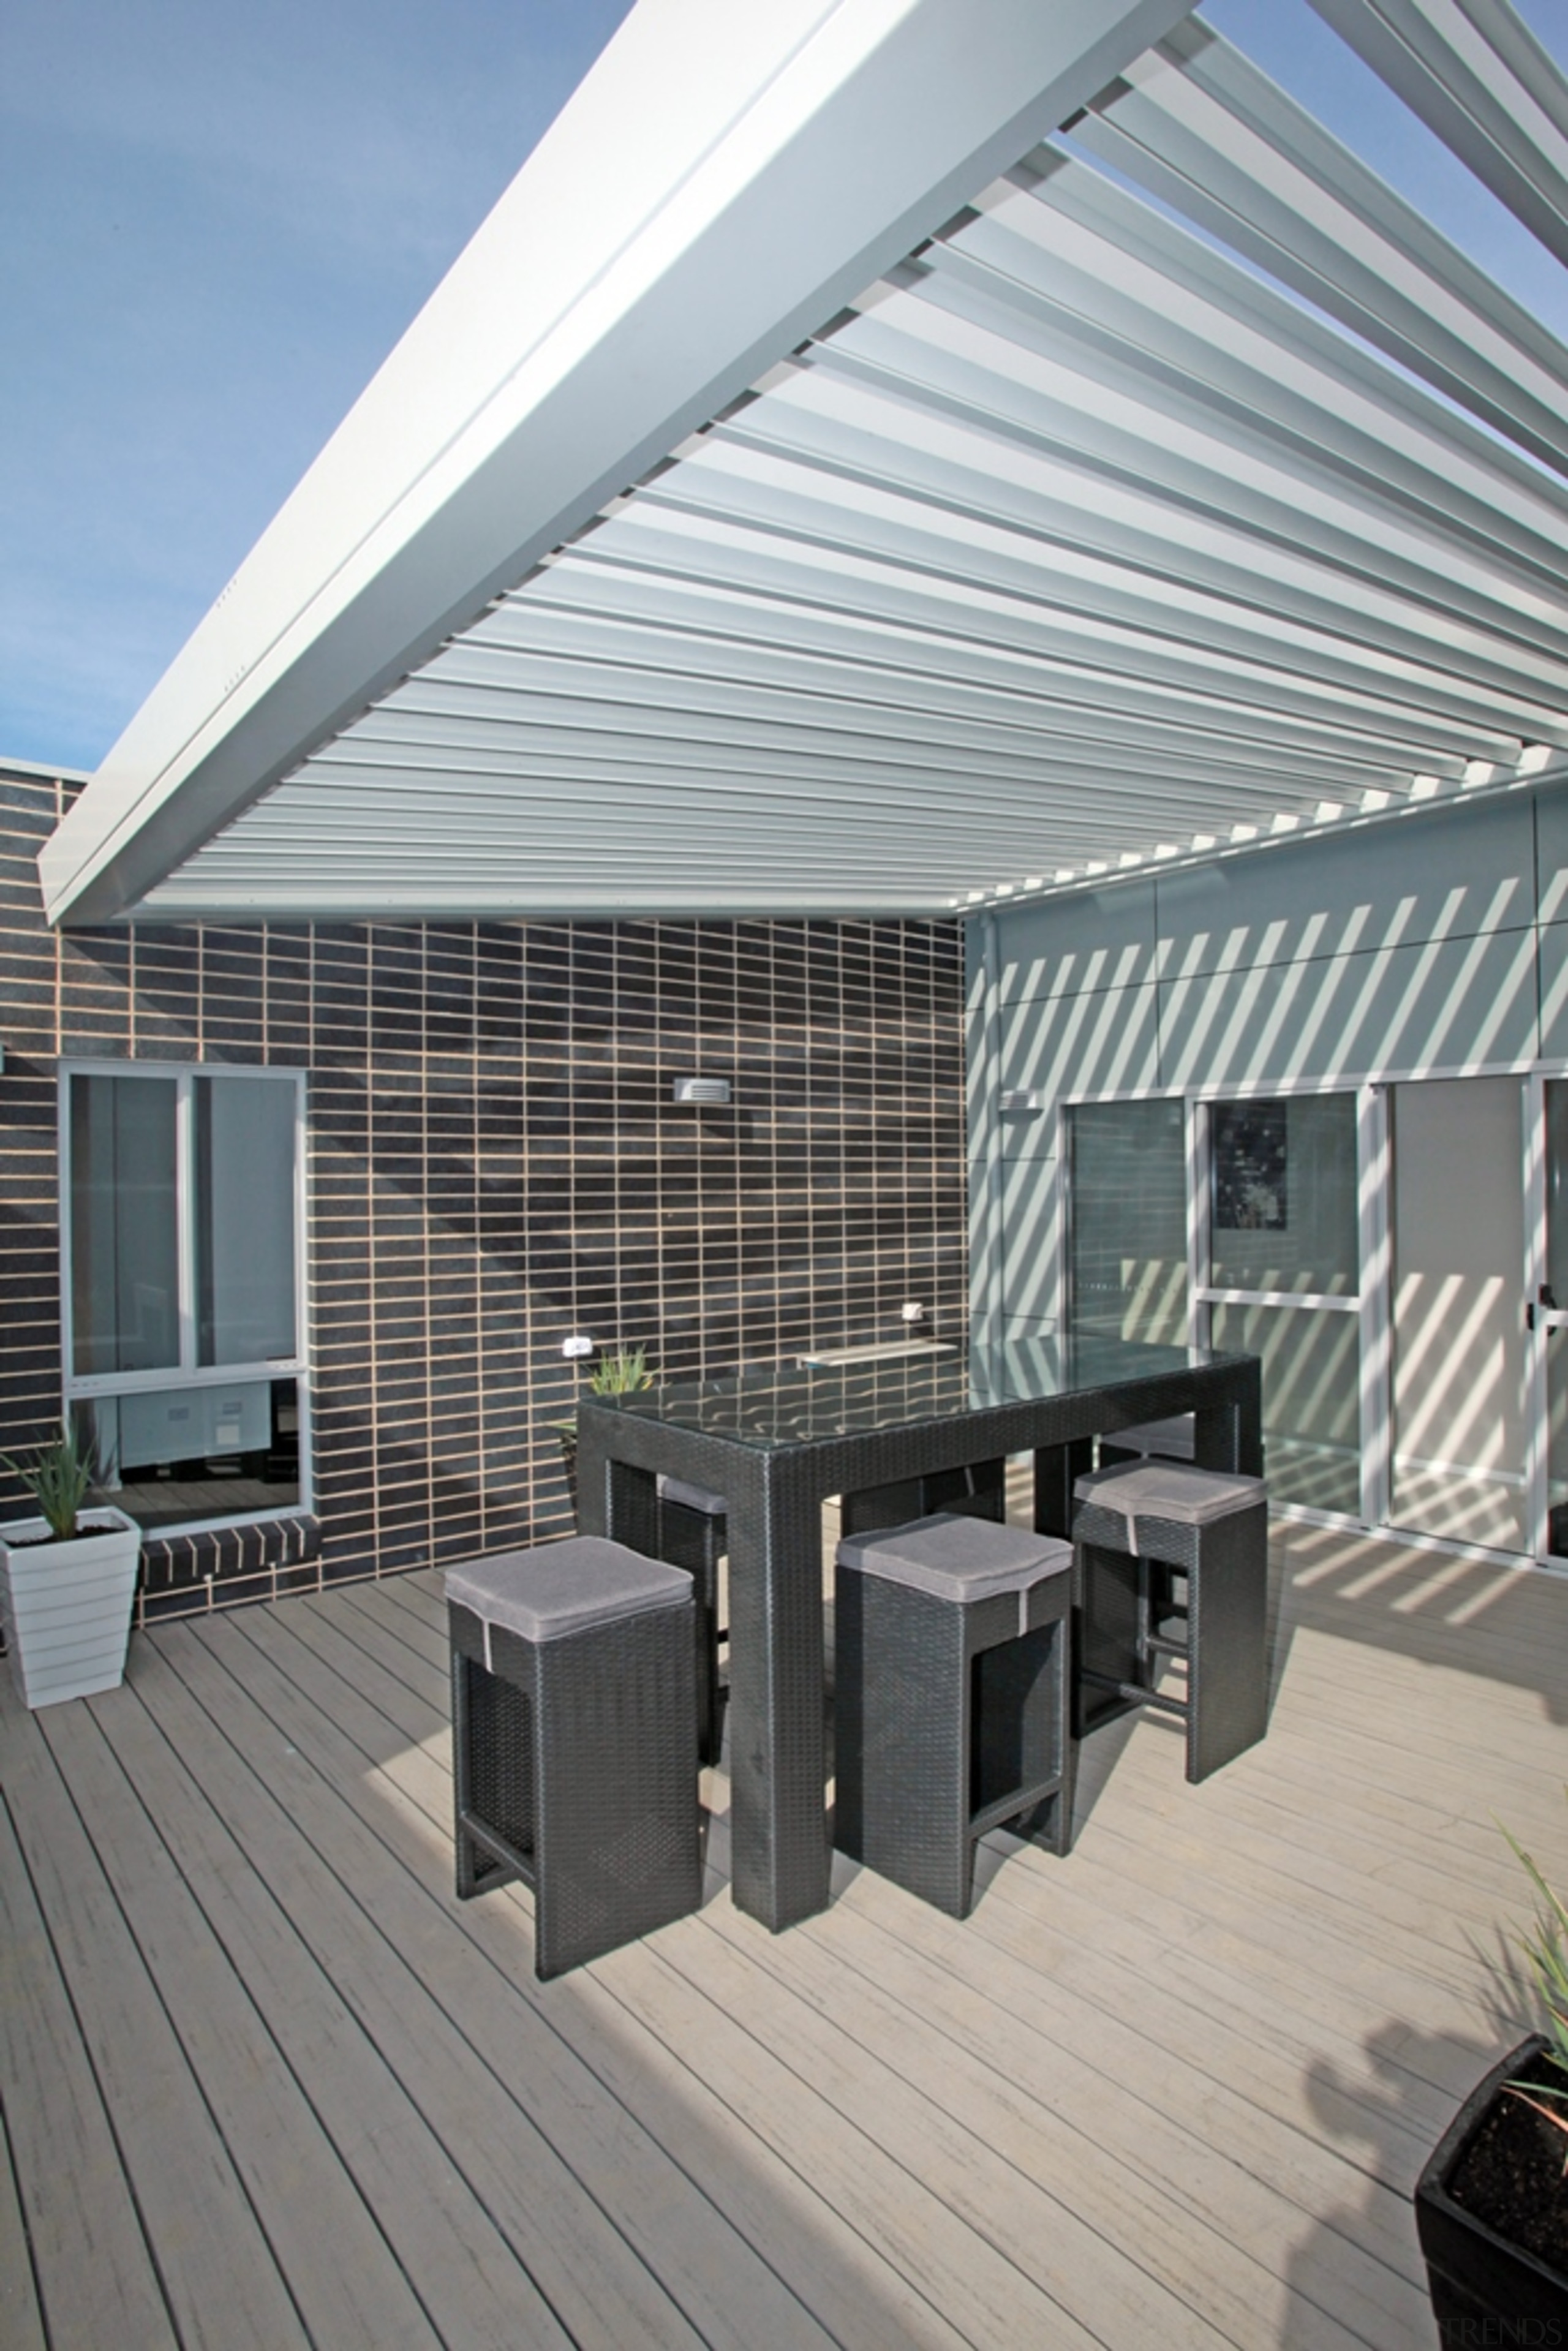 78580_louvretec-new-zealand-ltd_1557360744 - architecture | awning | building | architecture, awning, building, ceiling, deck, design, facade, home, house, interior design, pergola, property, real estate, roof, room, shade, siding, gray